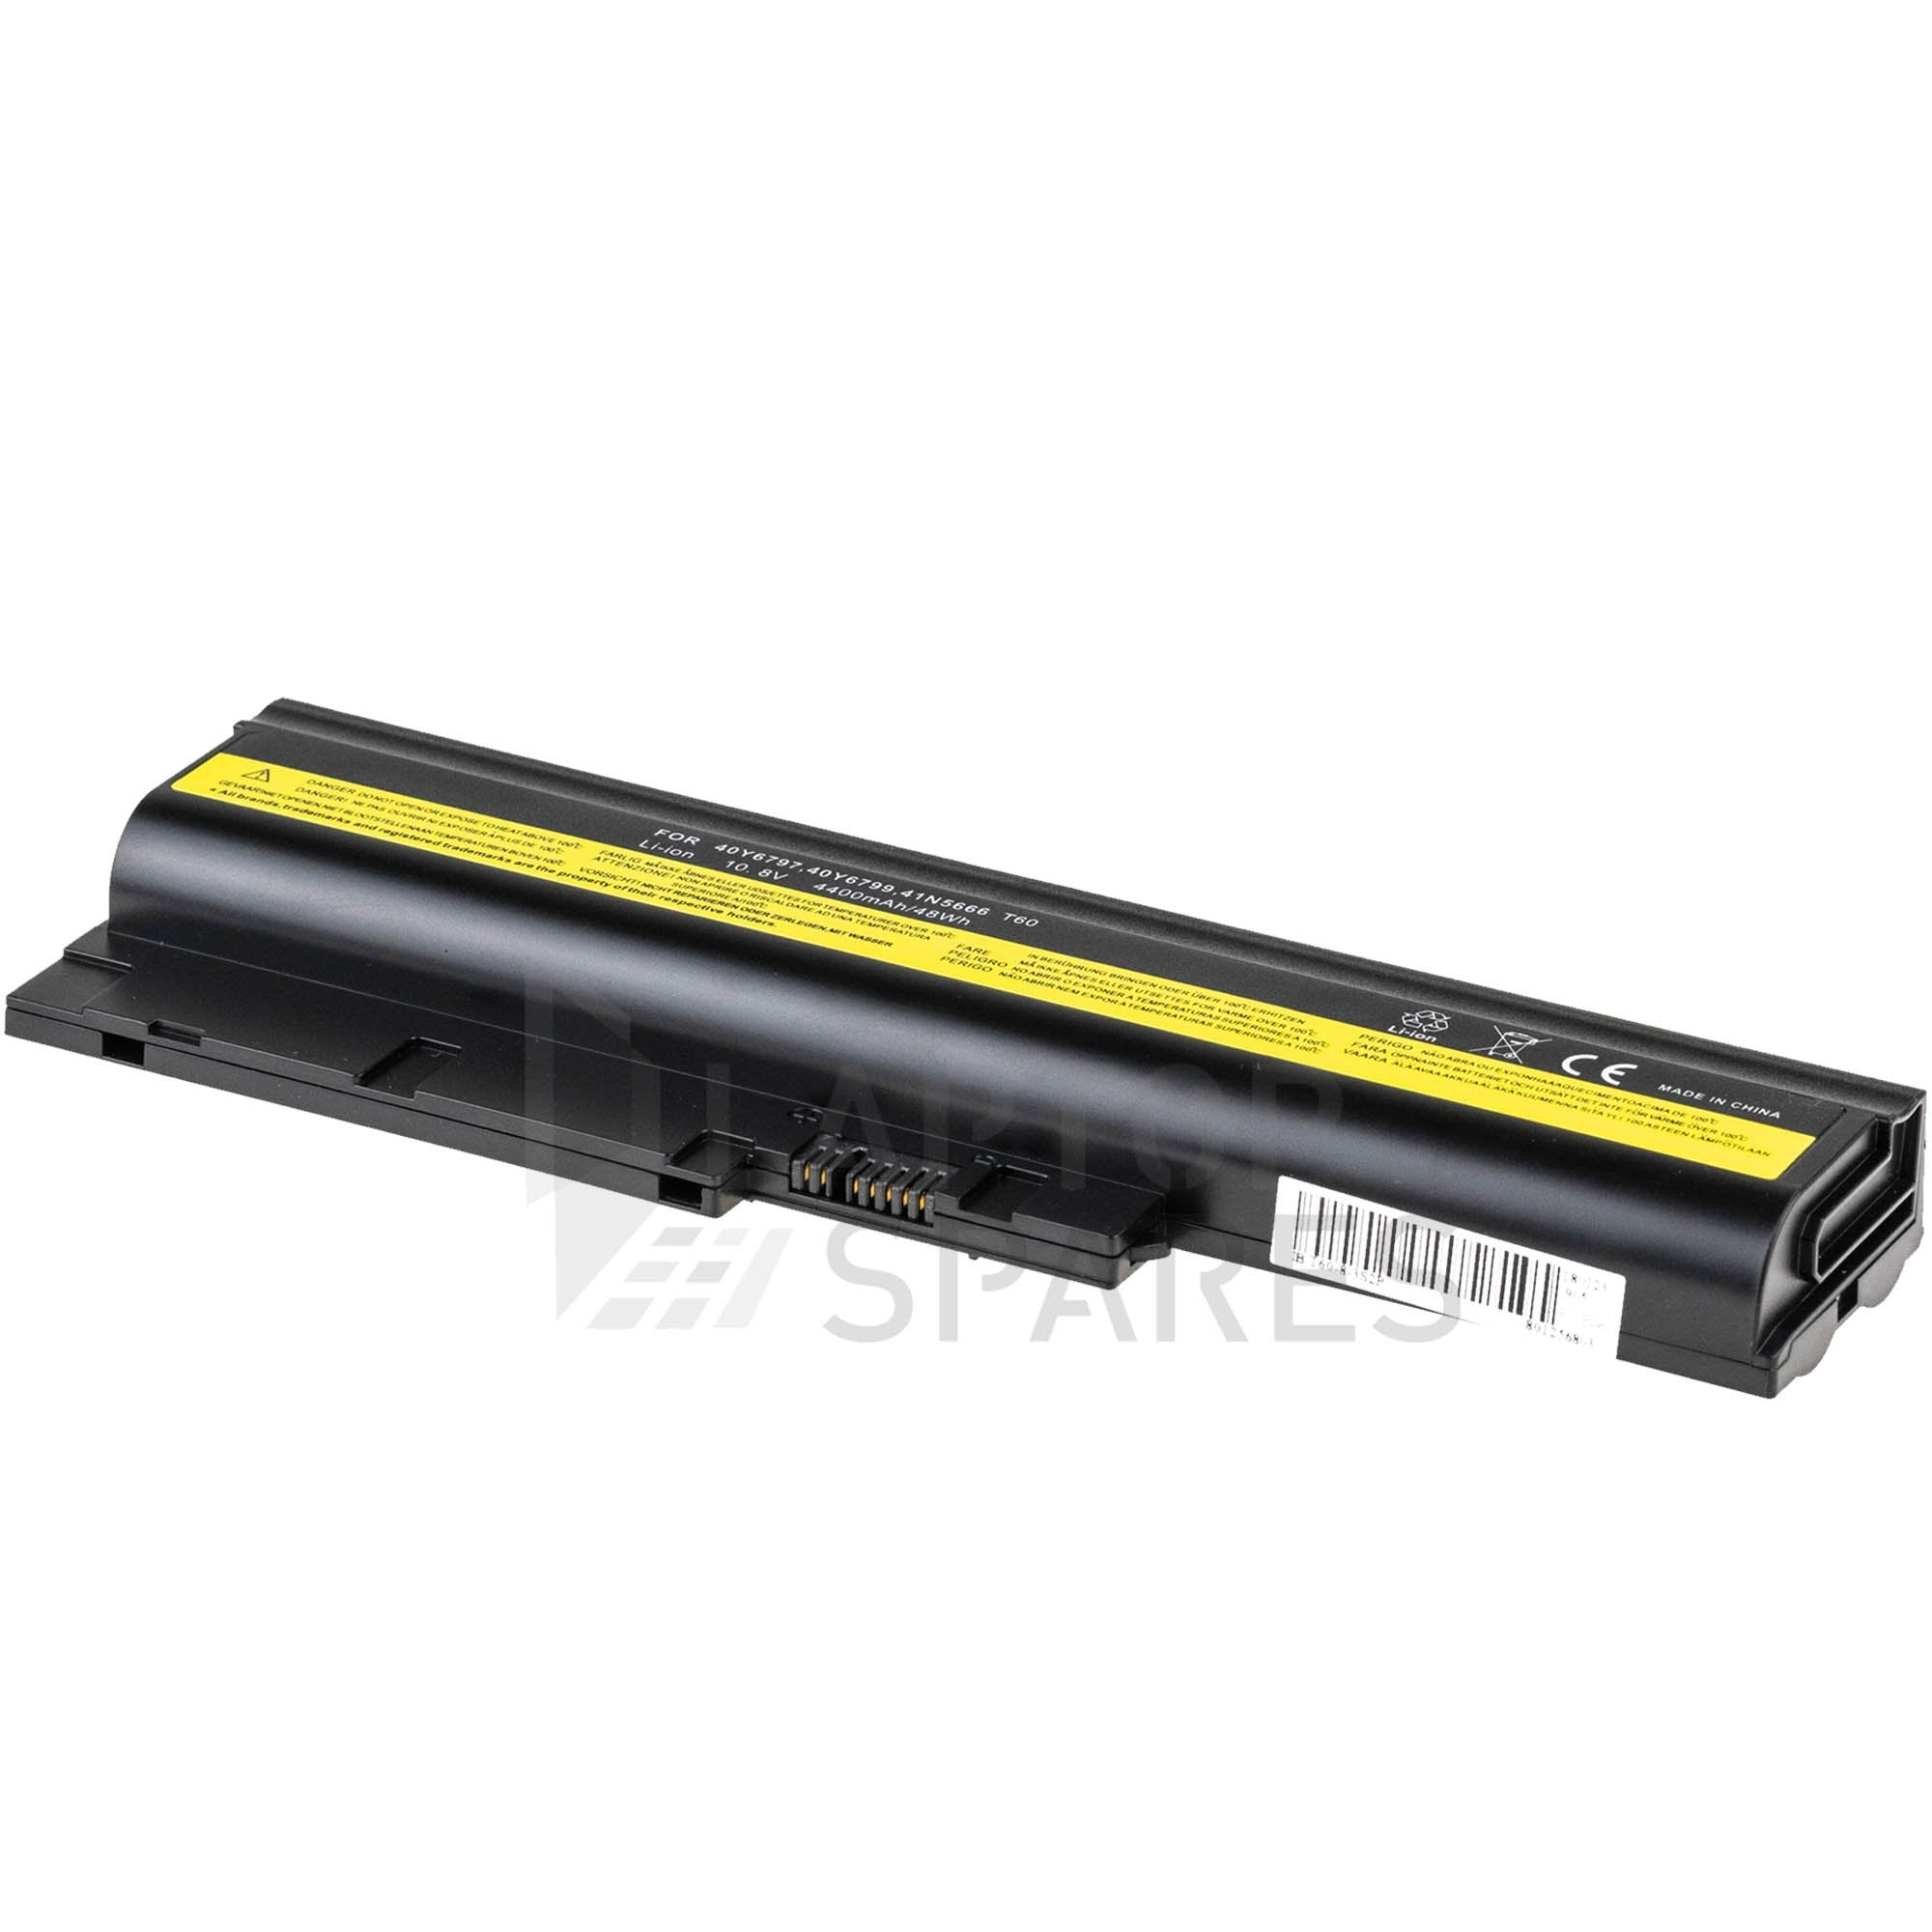 Lenovo 40Y6799 41N5666 4400mAh 6 Cell Battery